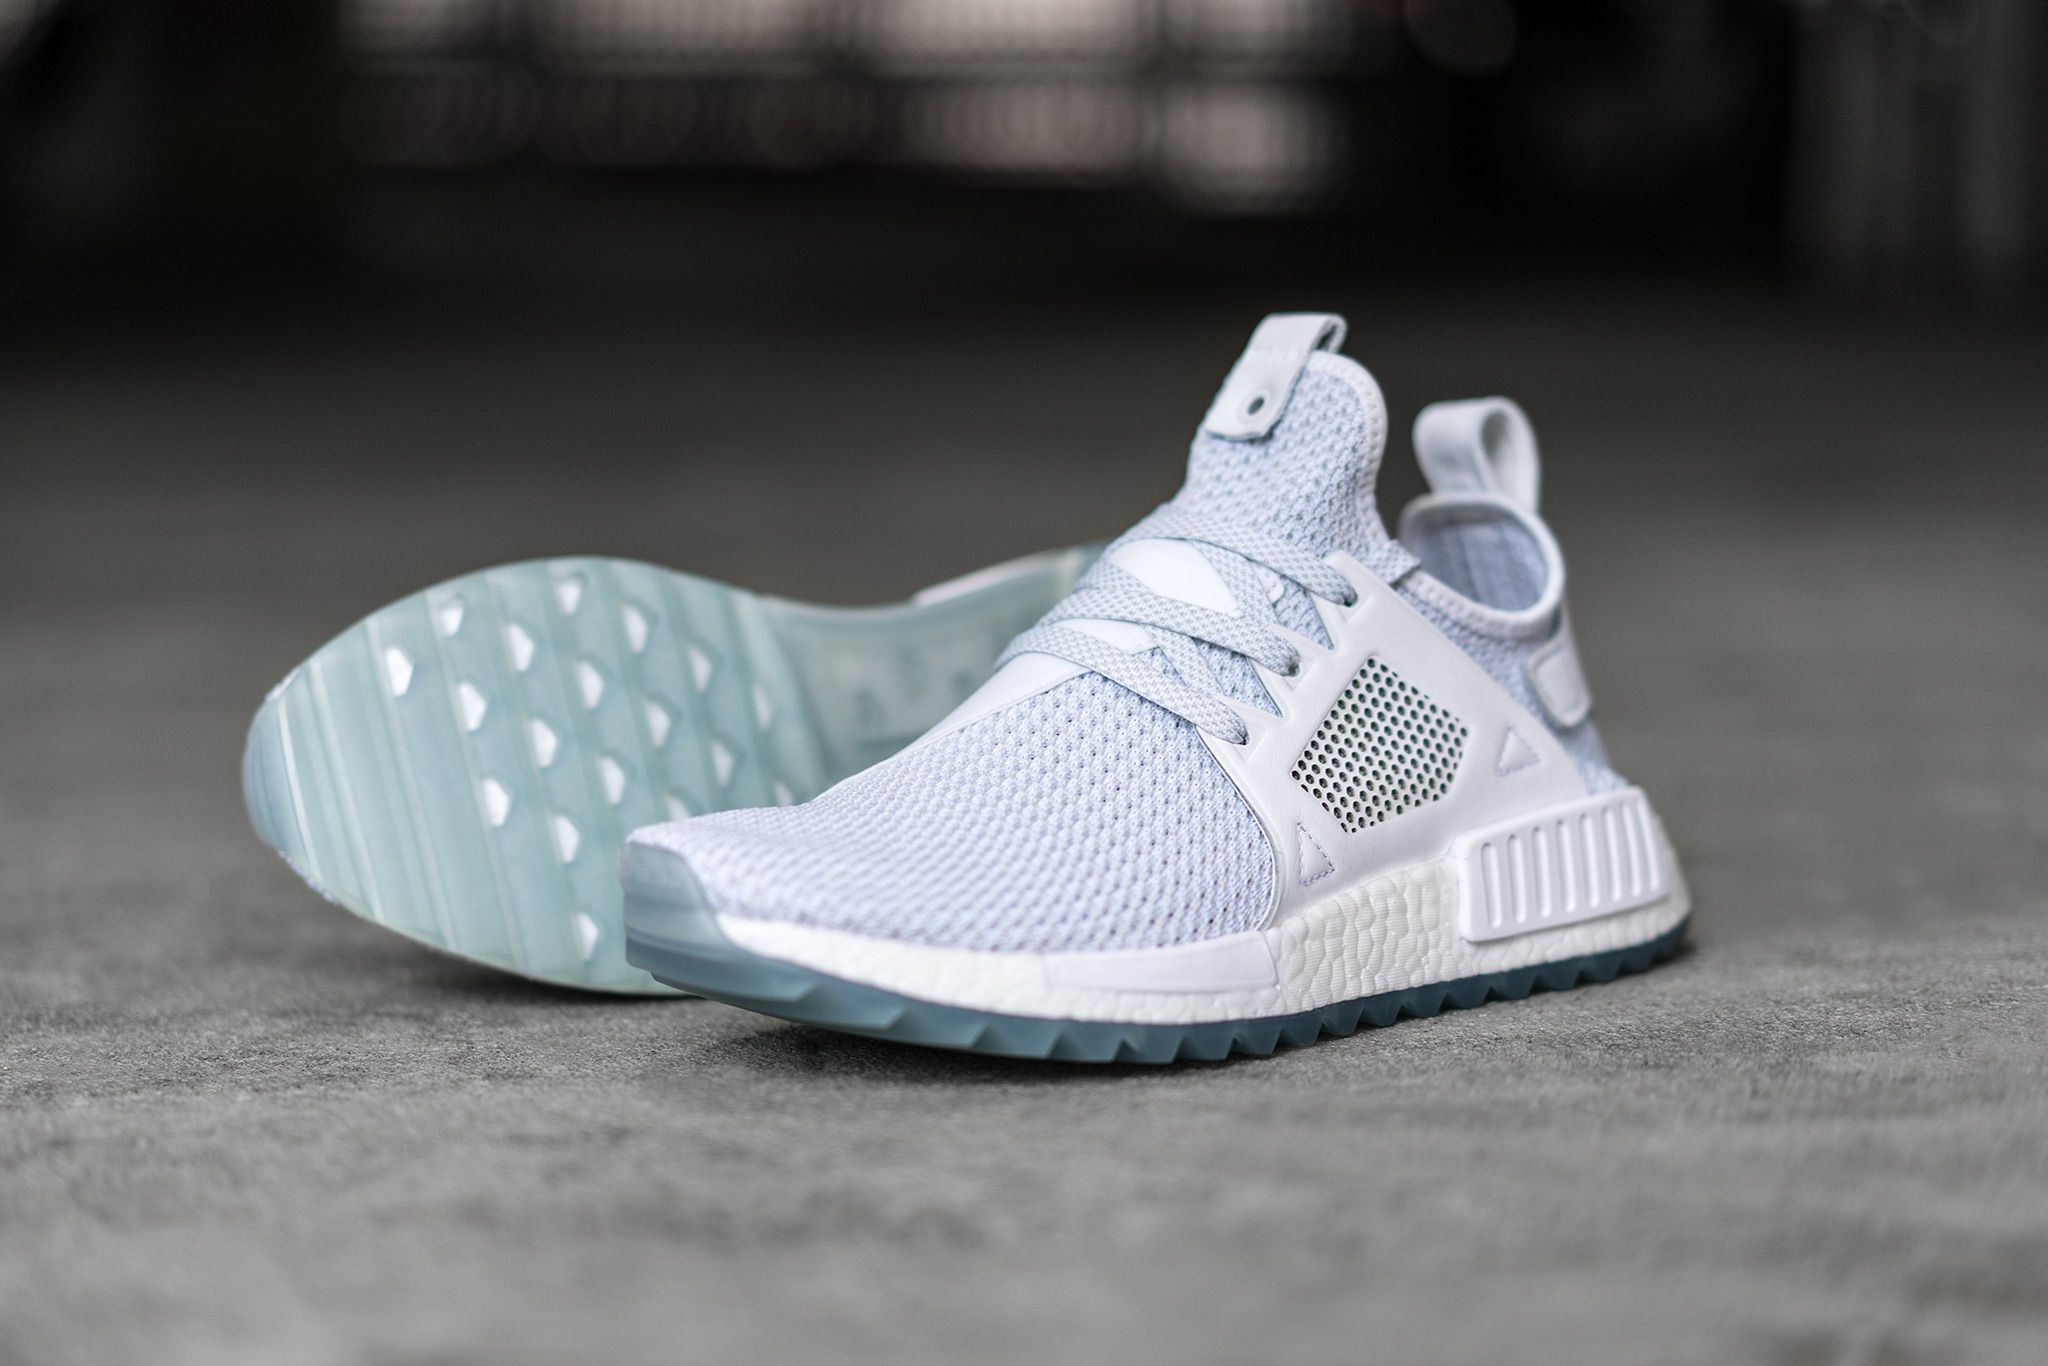 low priced 422df d935a New UA NMD XR1 Duck W Duck Camo Pack Pink with Big Discount